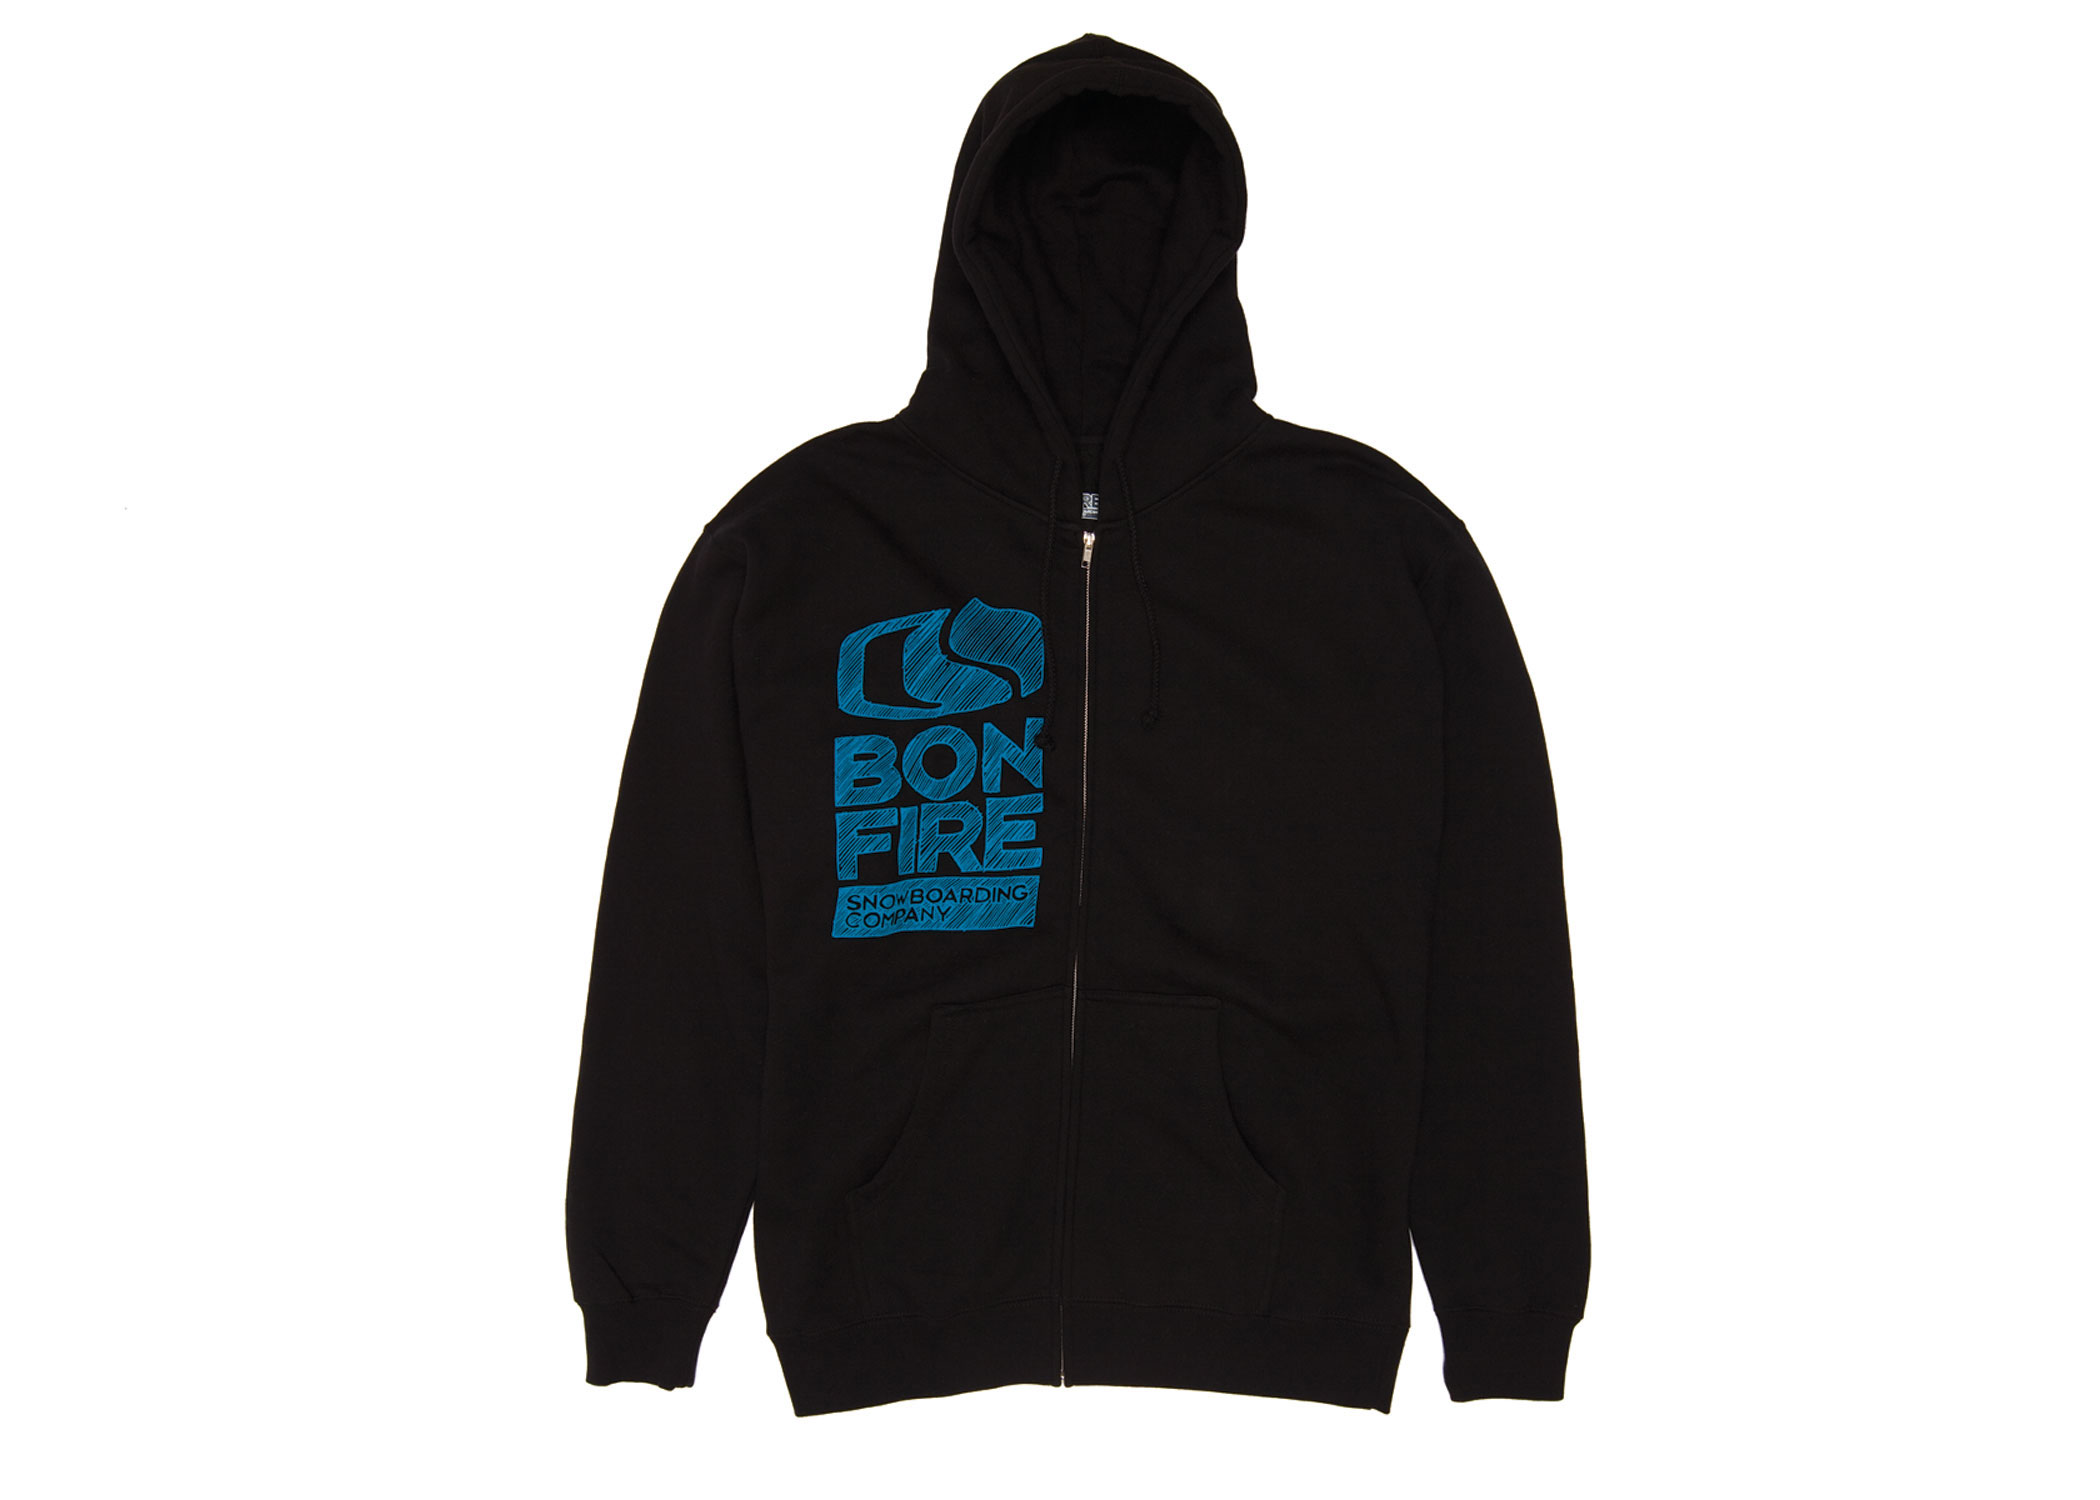 The Bonfire Sketch Hoodie is a cotton hoodie which means comfort, comfort, and comfort. Super ideal for casual, all day wear, rock this hoodie all winter long. Stay warm with its hood on your head, zip up and tighten the drawstring to block any wind from entering. Its logo is nicely printed on one side of the hoodie, adding character and design to an otherwise ordinary hoodie. Winters are brutal so be protected in the Bonfire Sketch Hoodie.Key Features of the Bonfire Sketch Hoodie: Cotton hoodie Full front zipper Draw cord hood Soft front pockets - $29.95